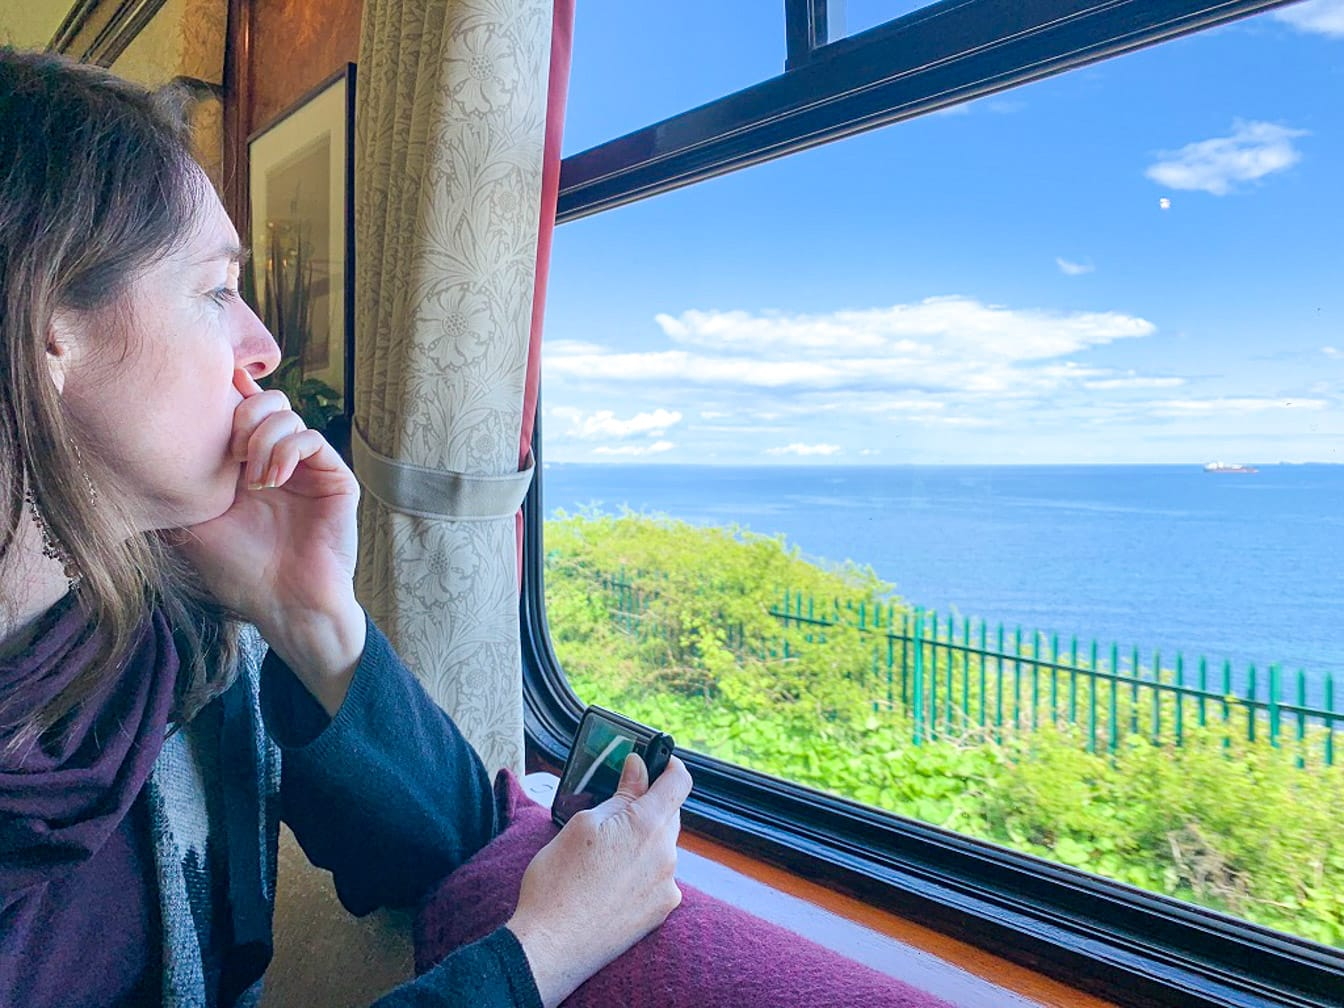 Woman staring out the window on the Grand Tour of Great Britain journey